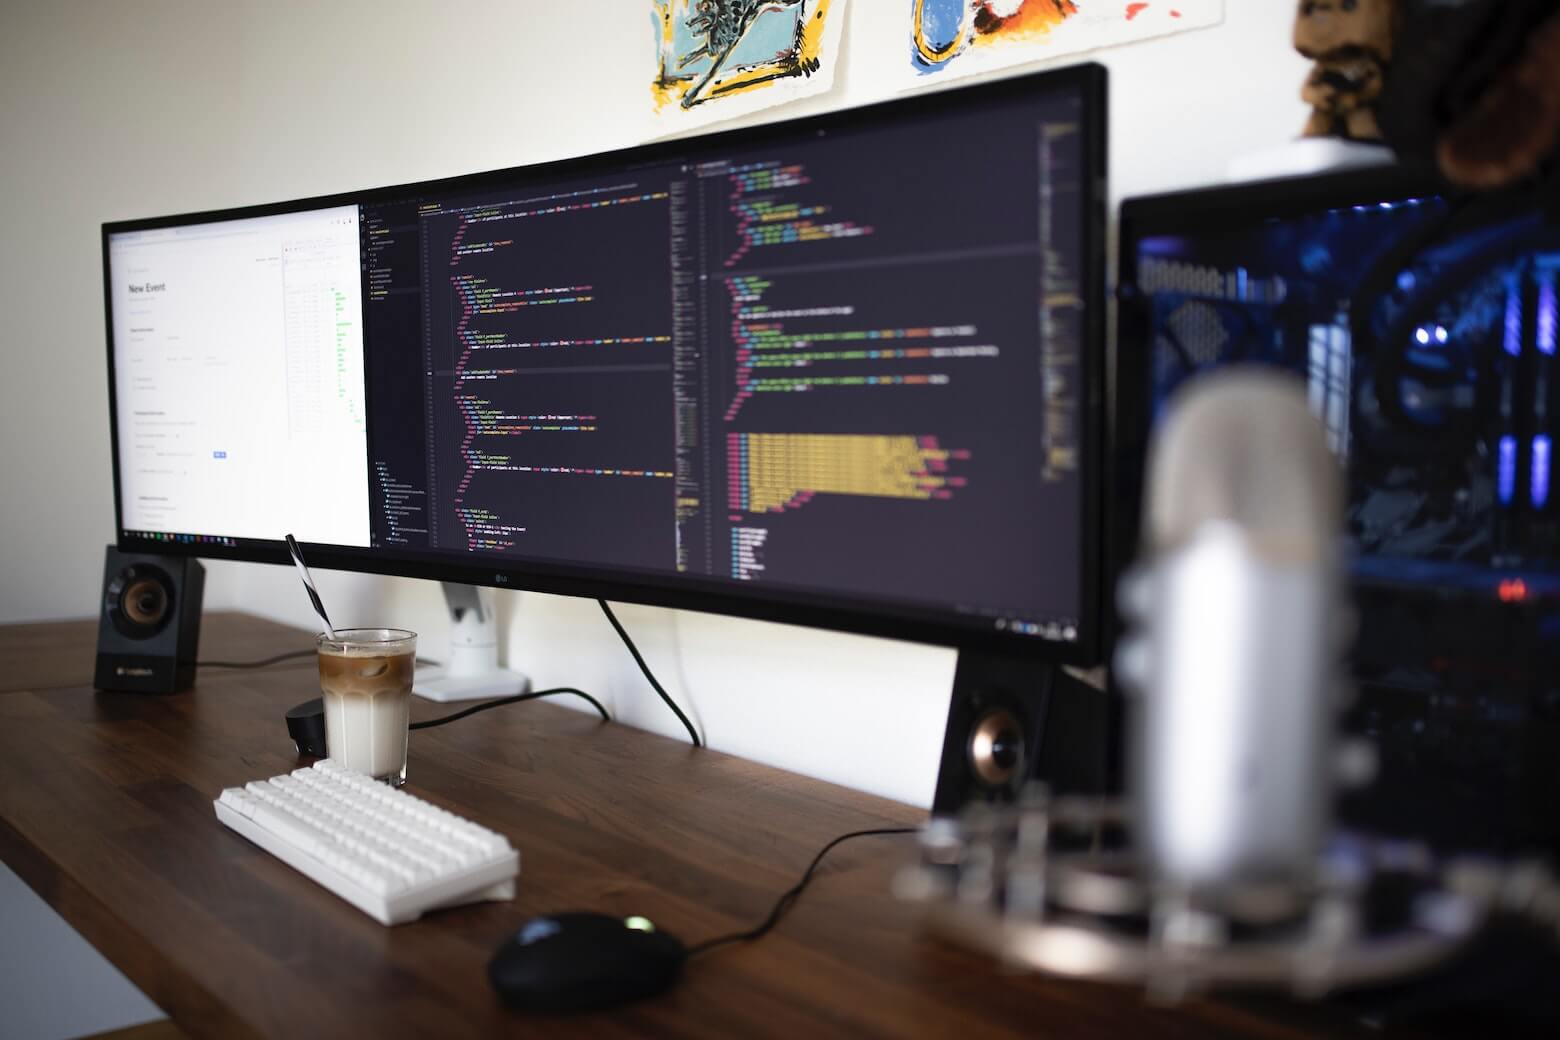 Node.js in Profile - Is It Right for You? Pros & Cons